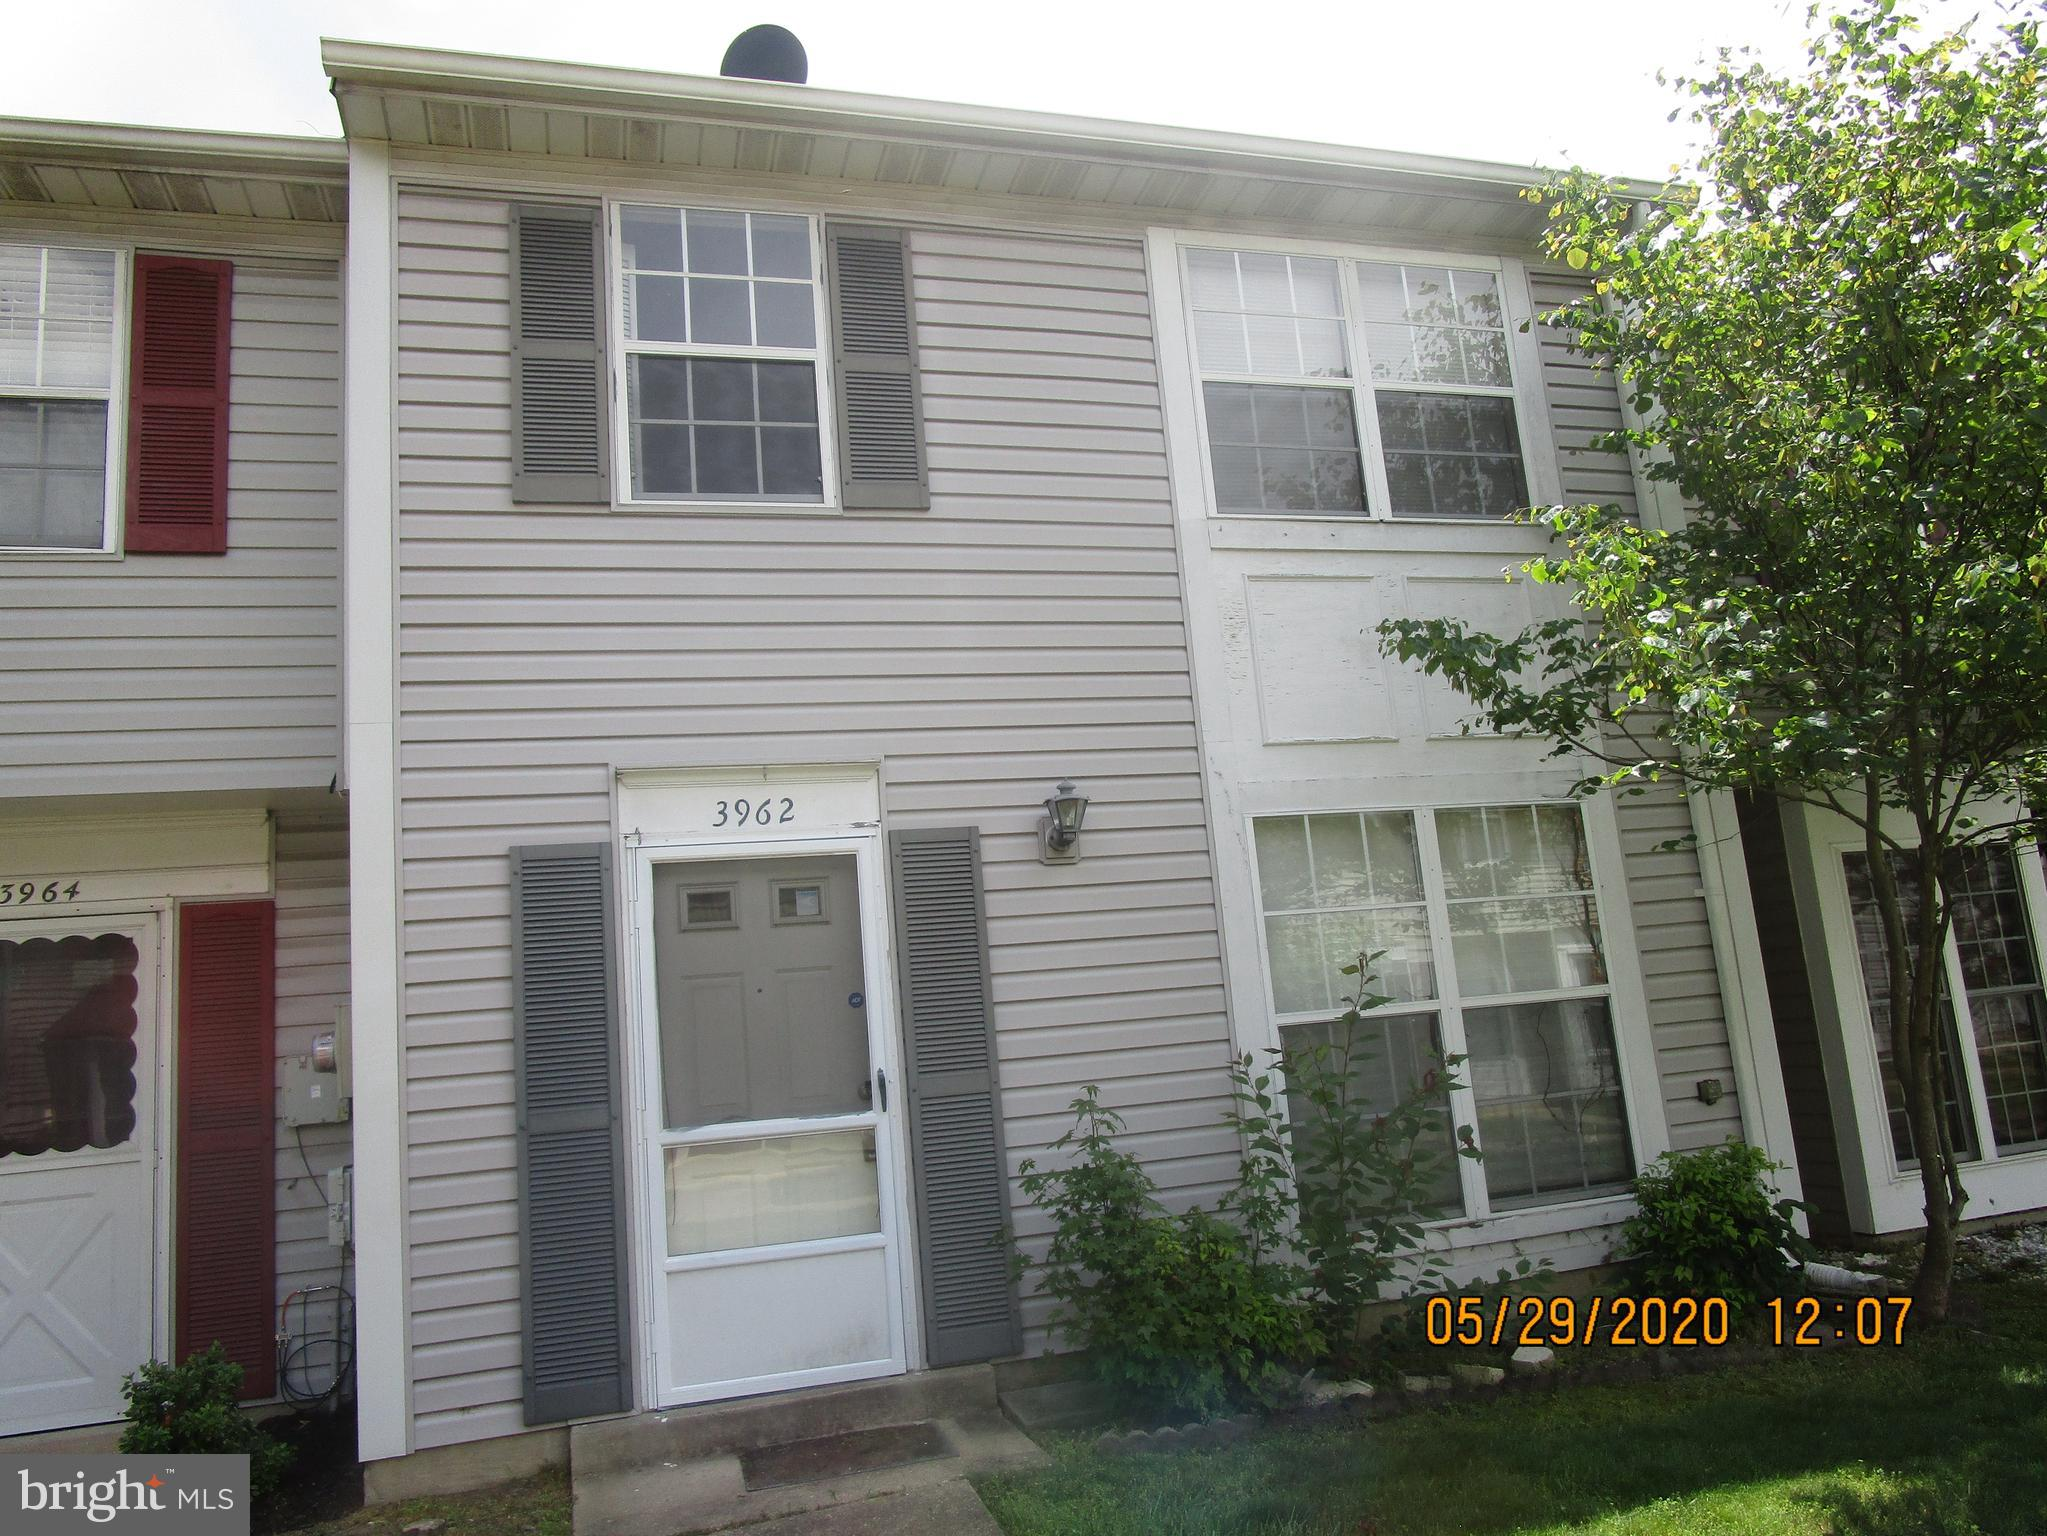 Property needs some TLC - 3 generous sized bedrooms large eat-in kitchen - All major appliances are